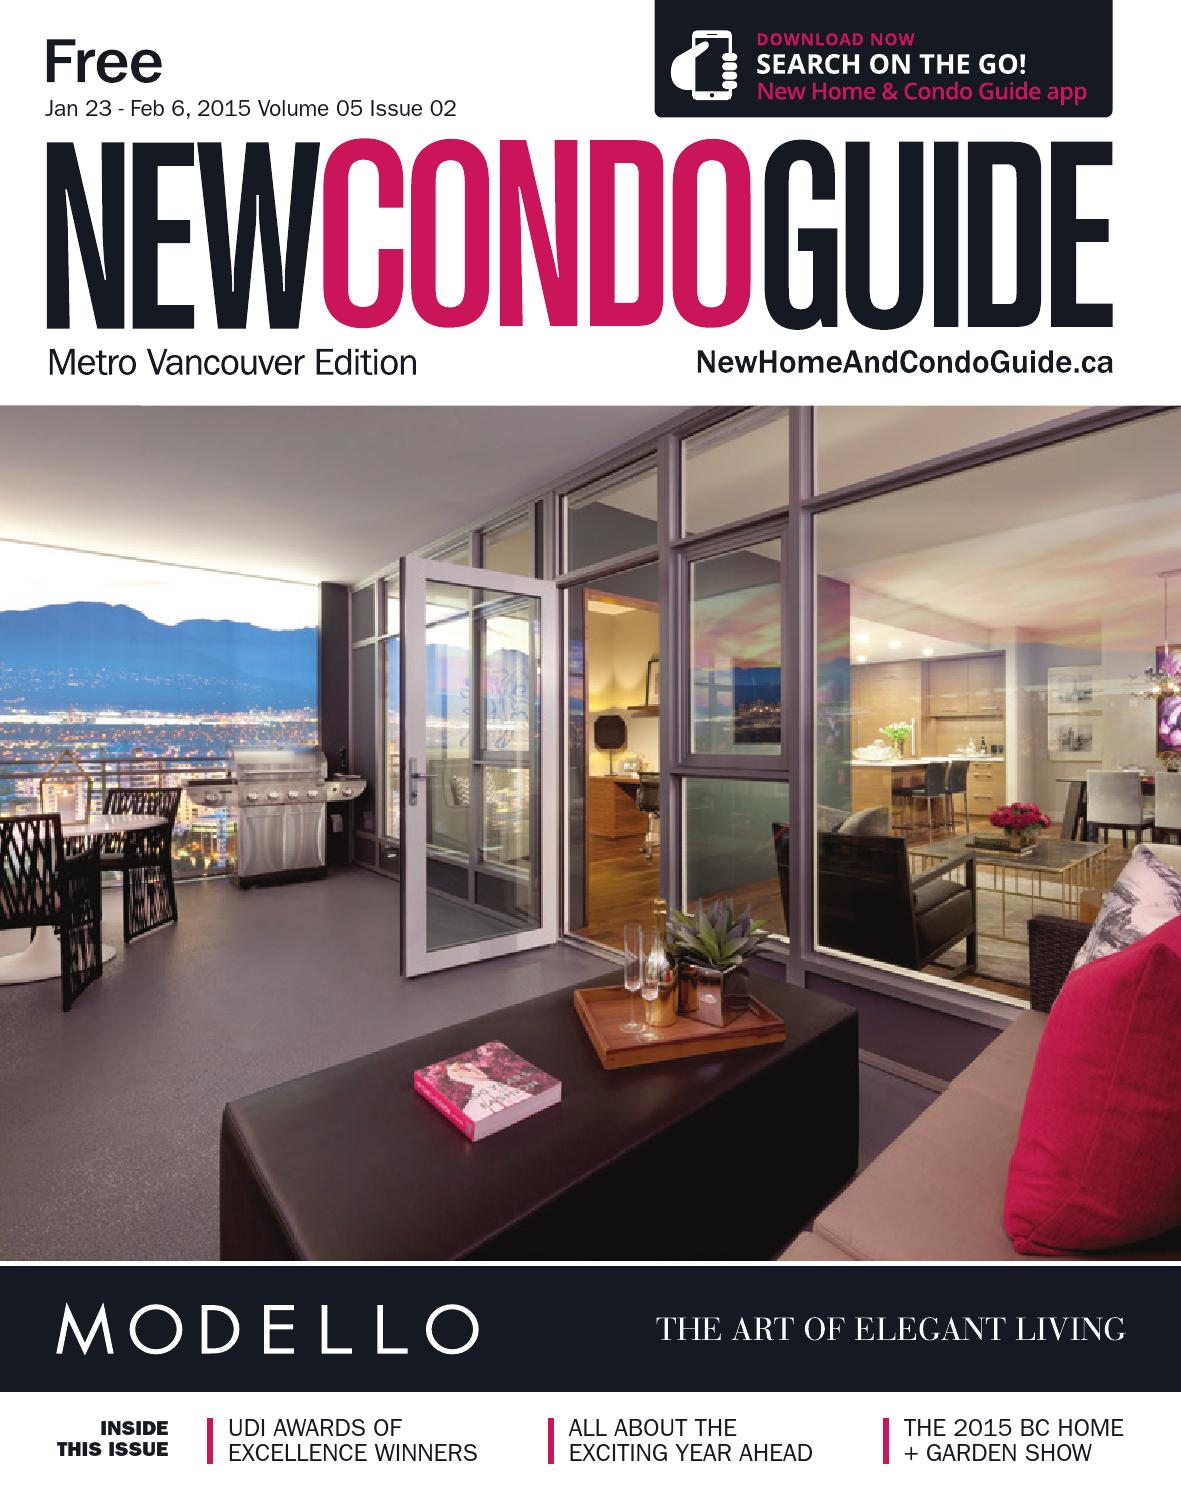 BC New Condo Guide   Jan 23, 2015 By NextHome   Issuu